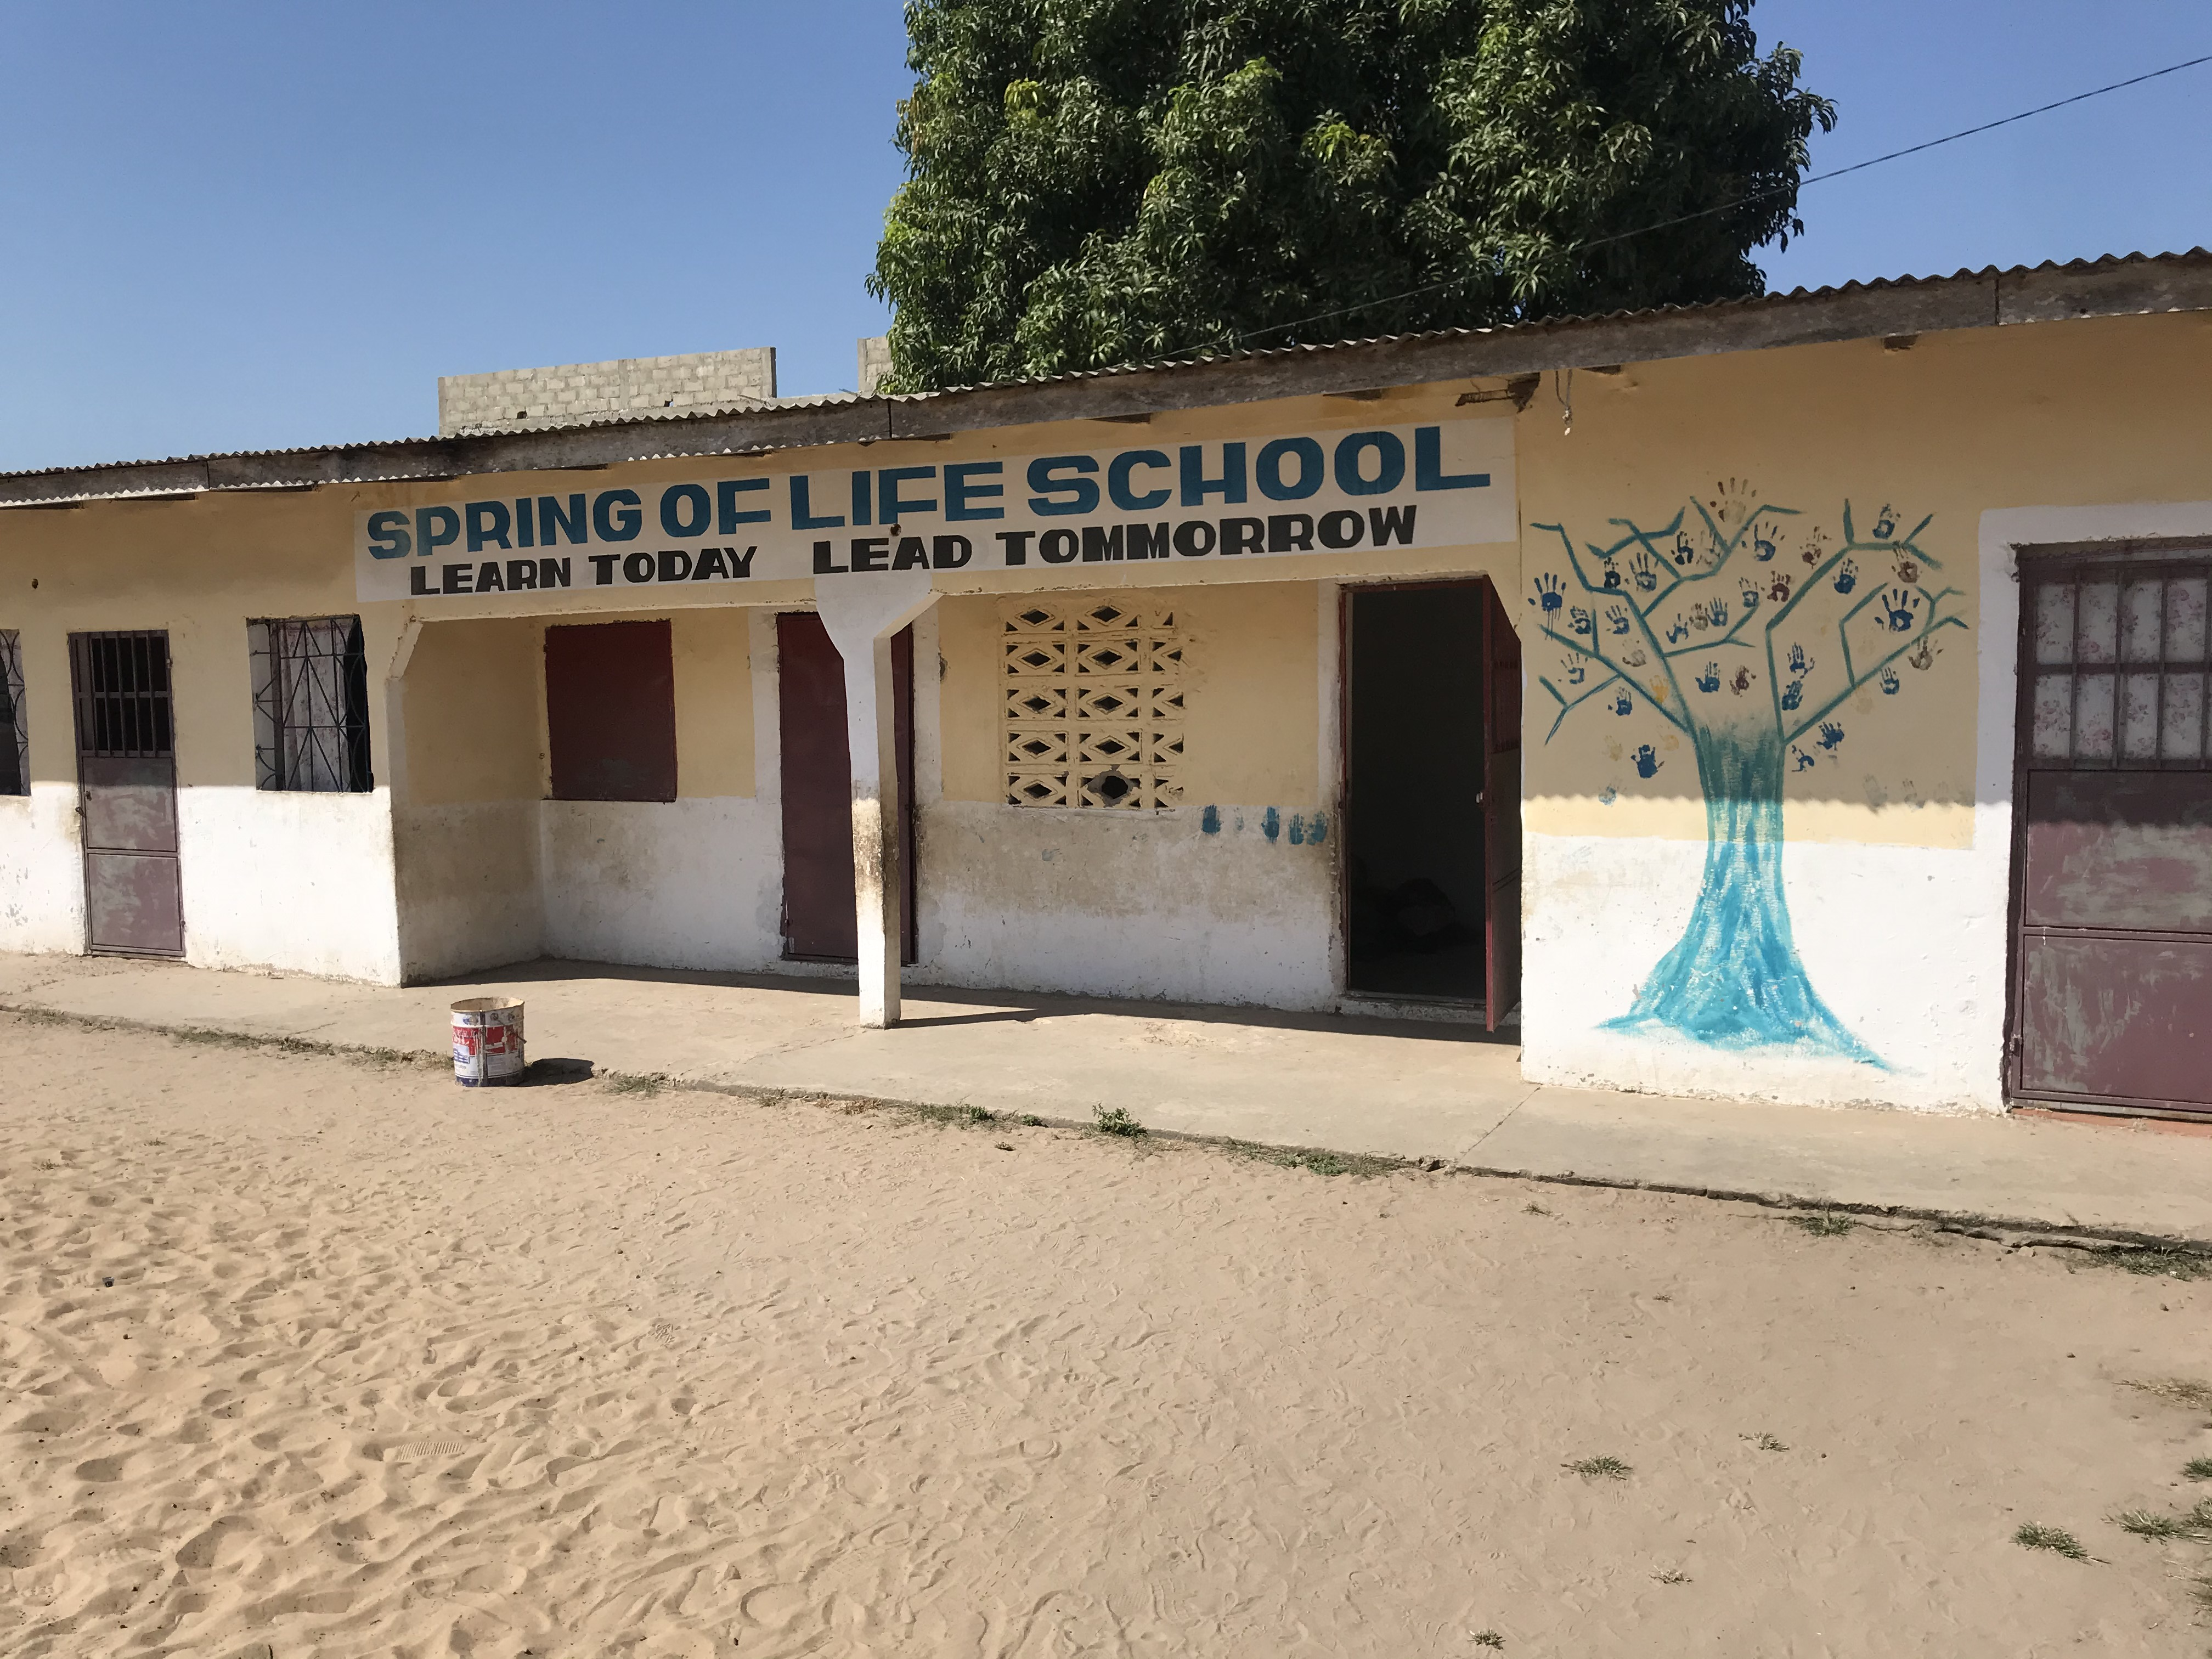 Spring of Life School